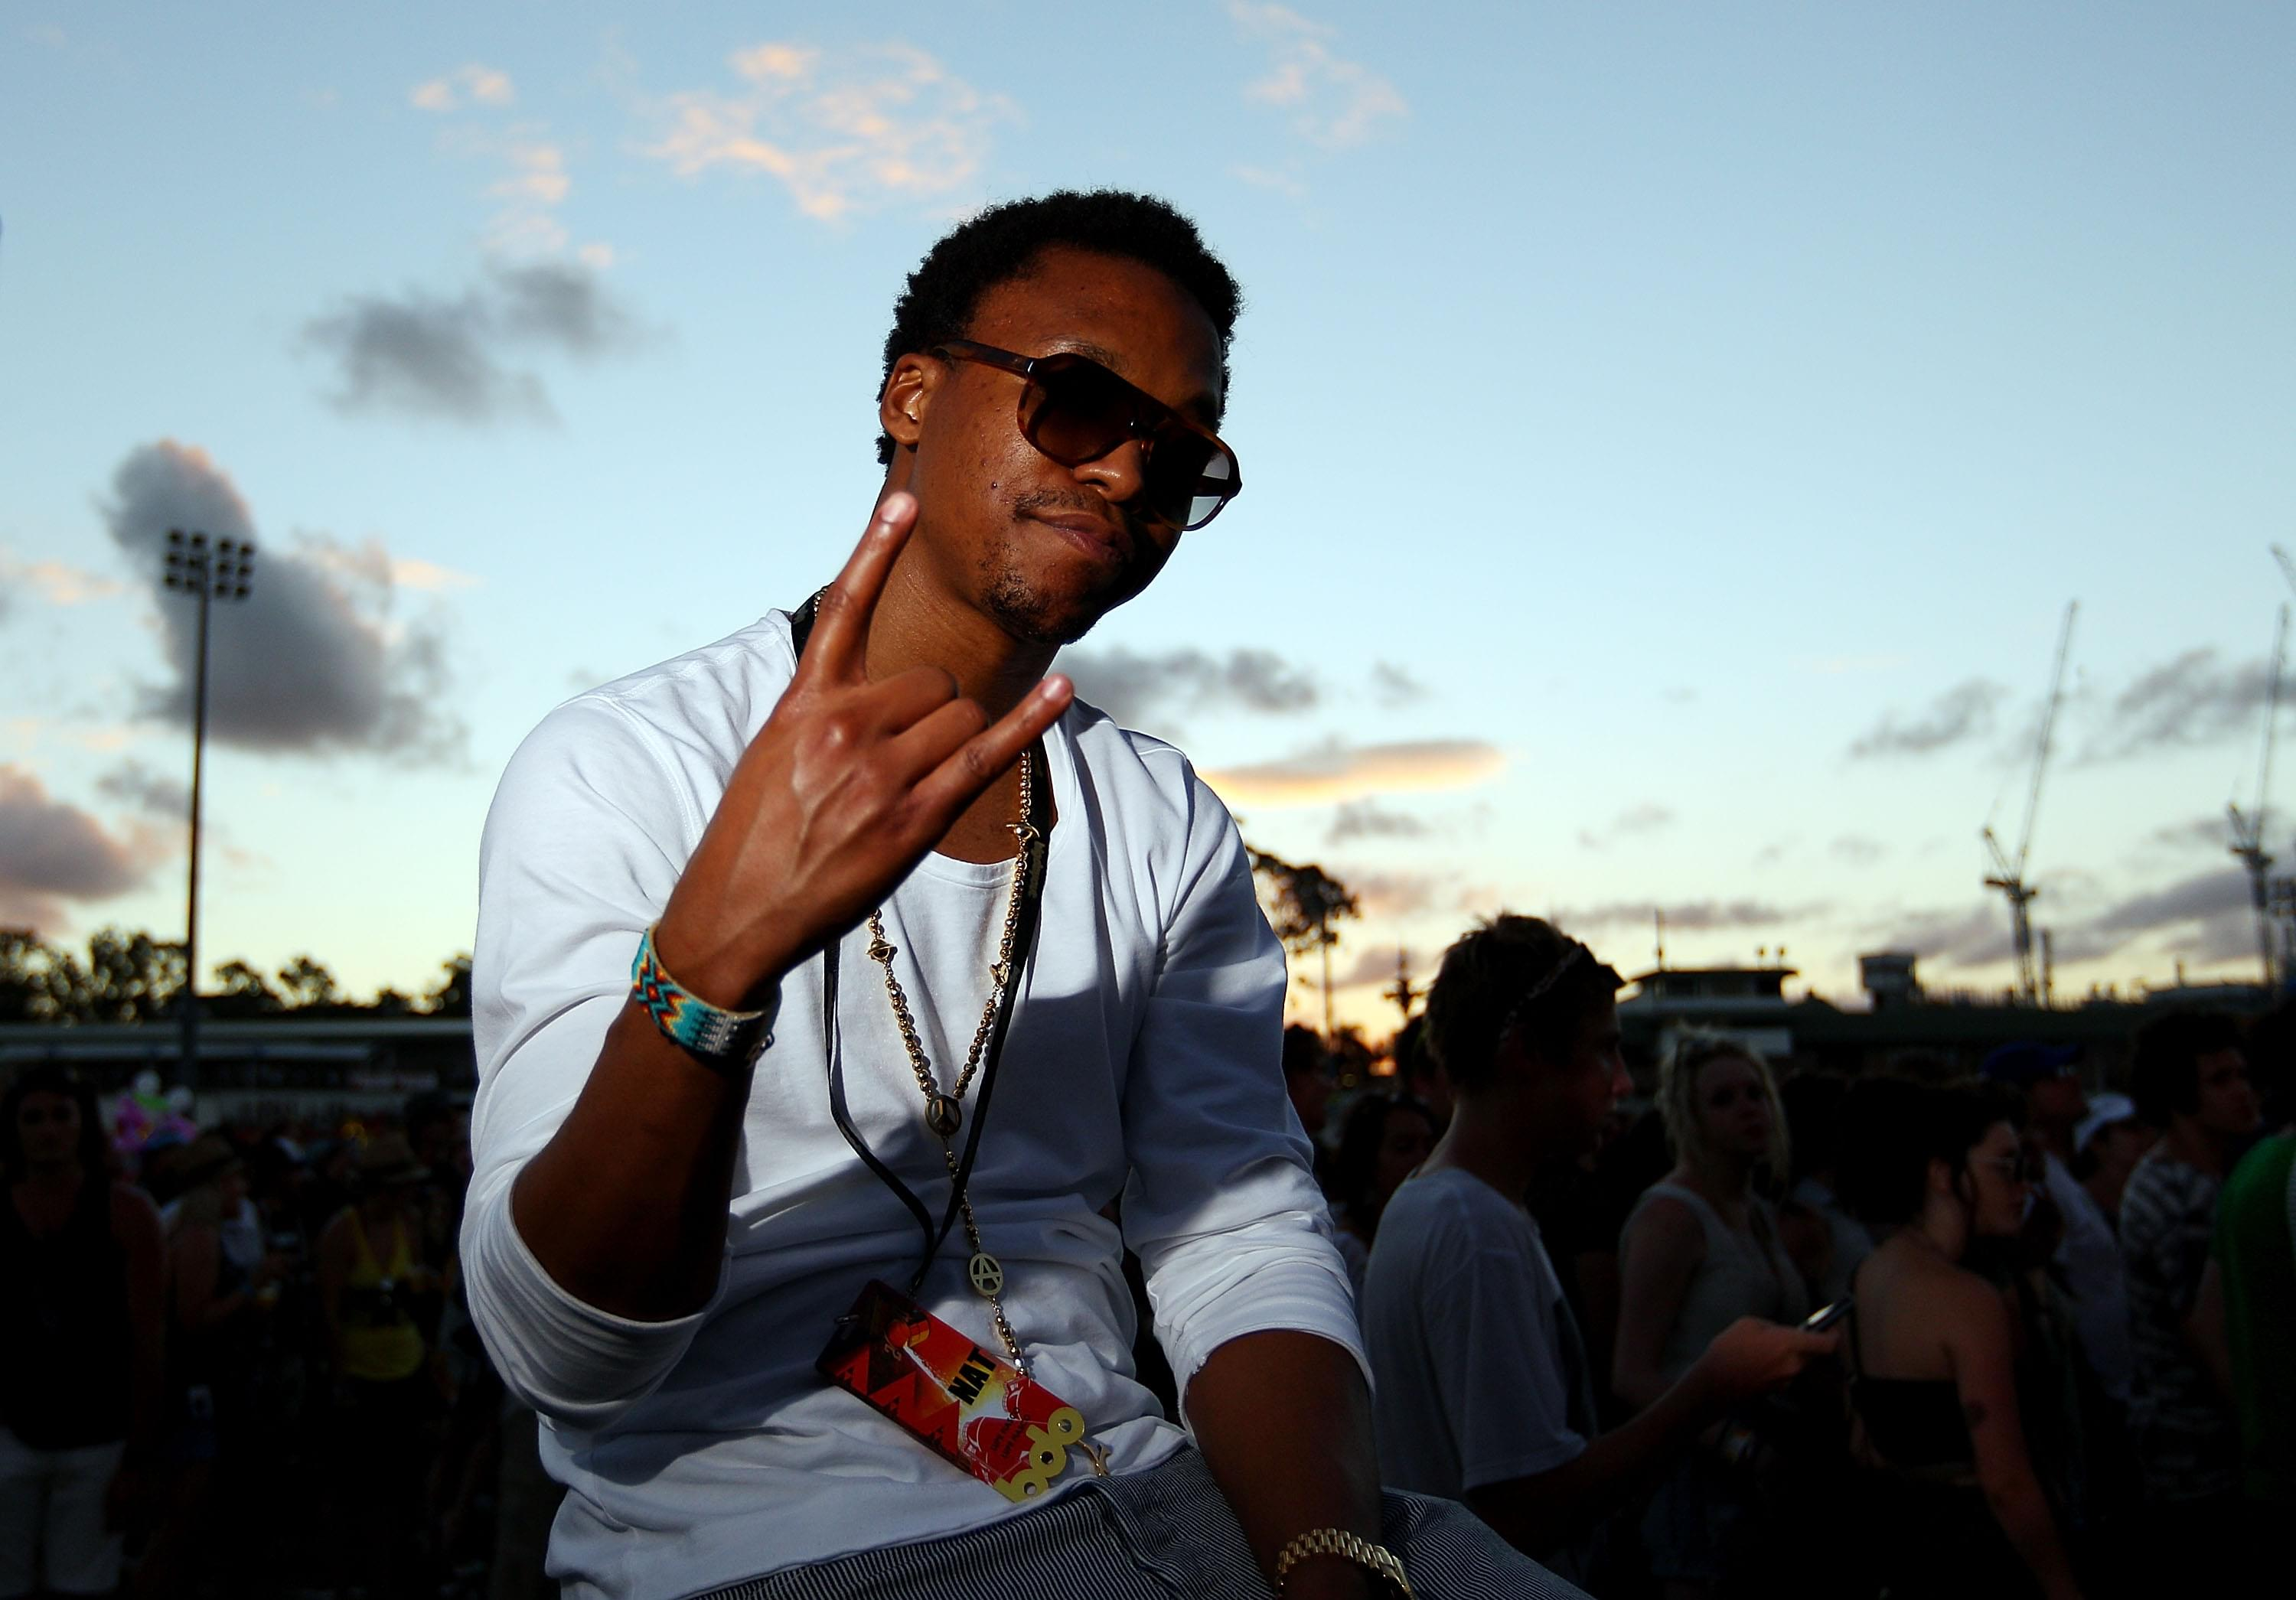 Lupe Fiasco Lists His Top 3 Rappers